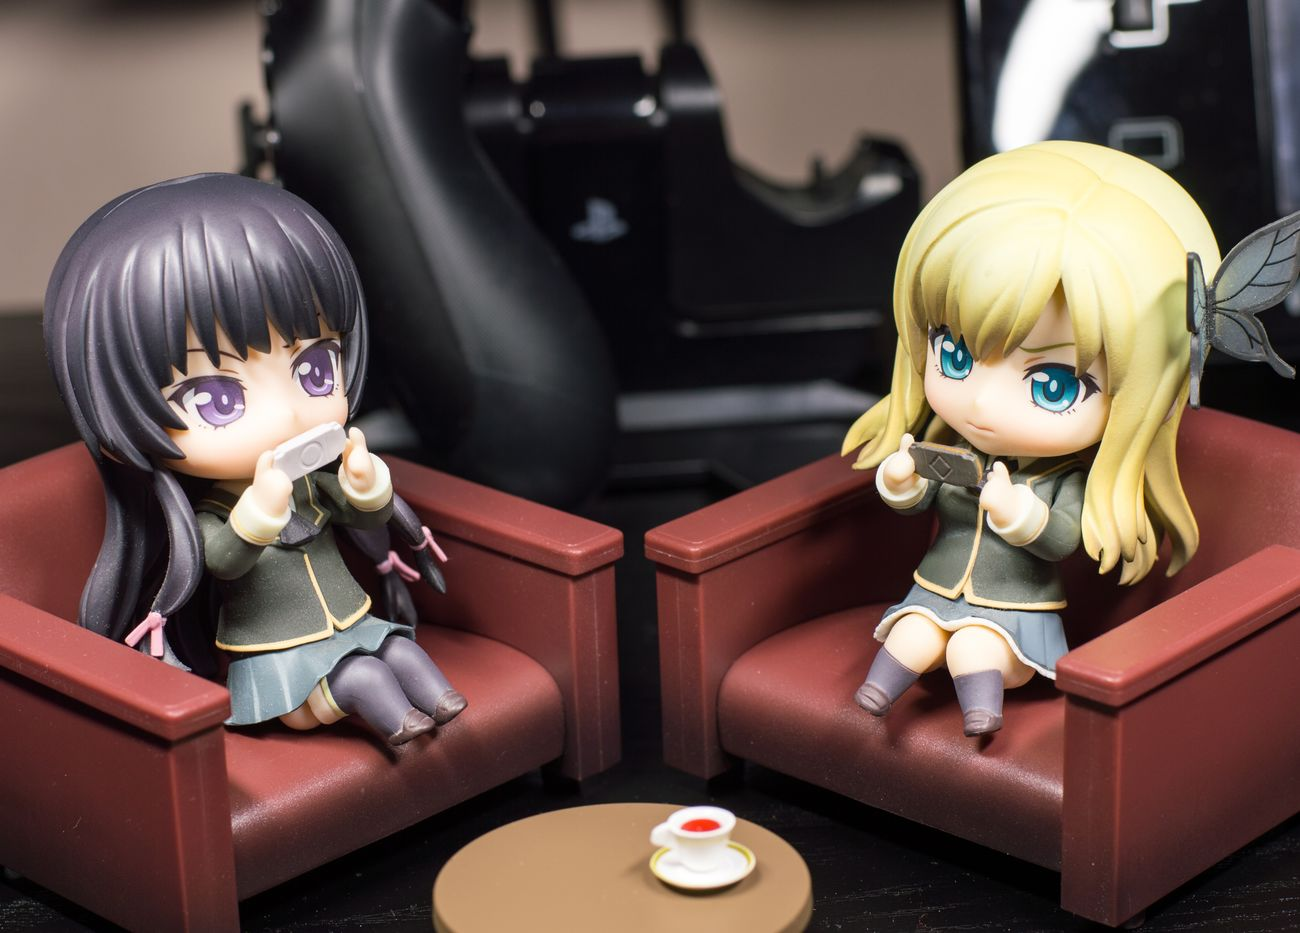 Gaming all day long Nendoroid Nendophotography Goodsmilecompany Toyphotography Figurephotography Animefigure Haganai